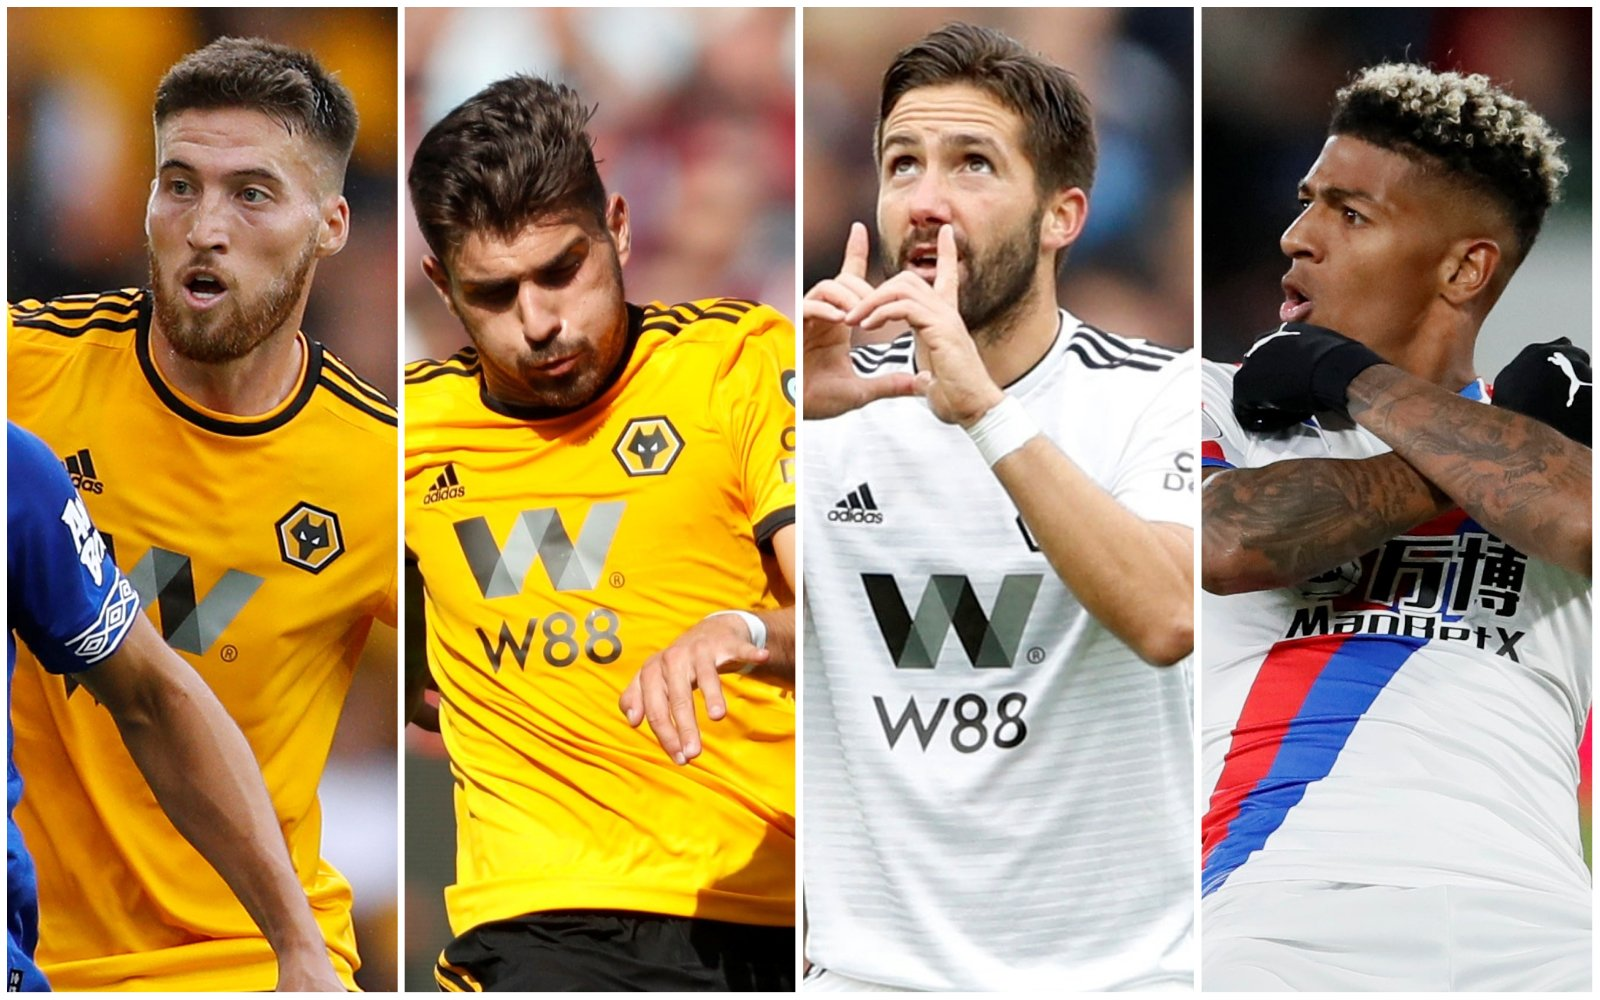 Palace and Wolves combined XI - Wingbacks and Midfield